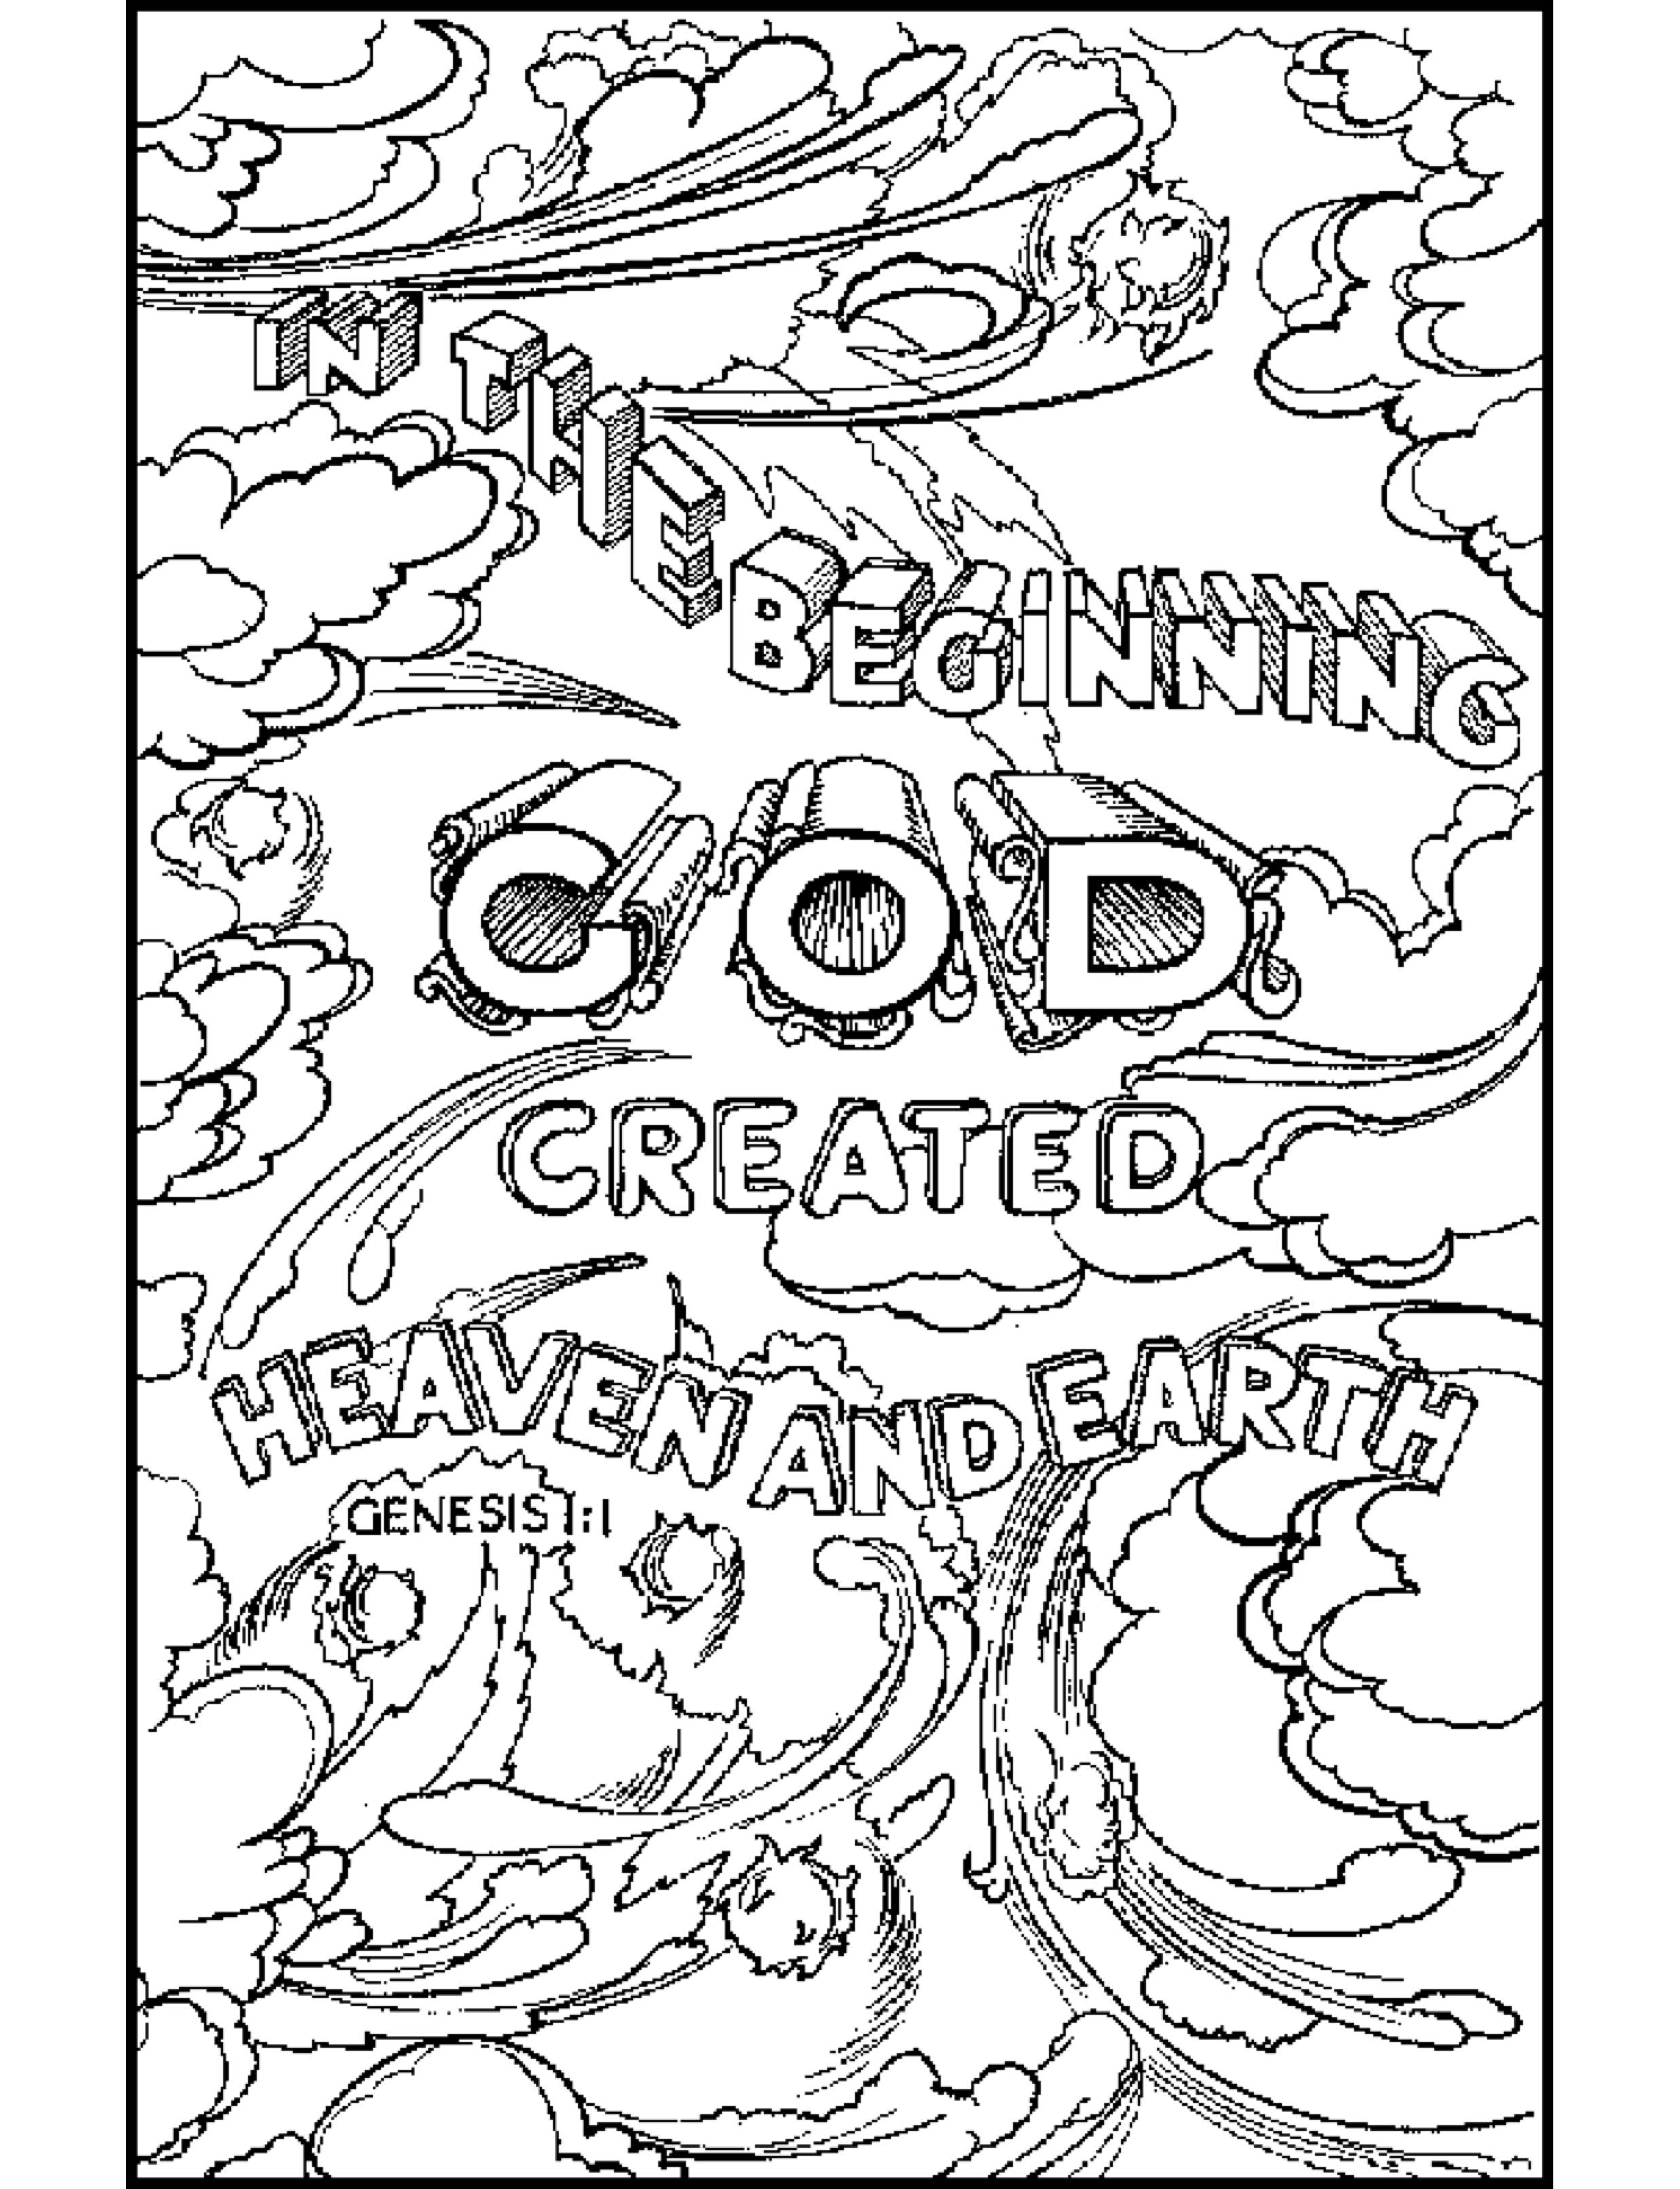 Coloring Book World ~ Christian Coloring Sheets Top Free Printable - Free Printable Bible Verses Adults